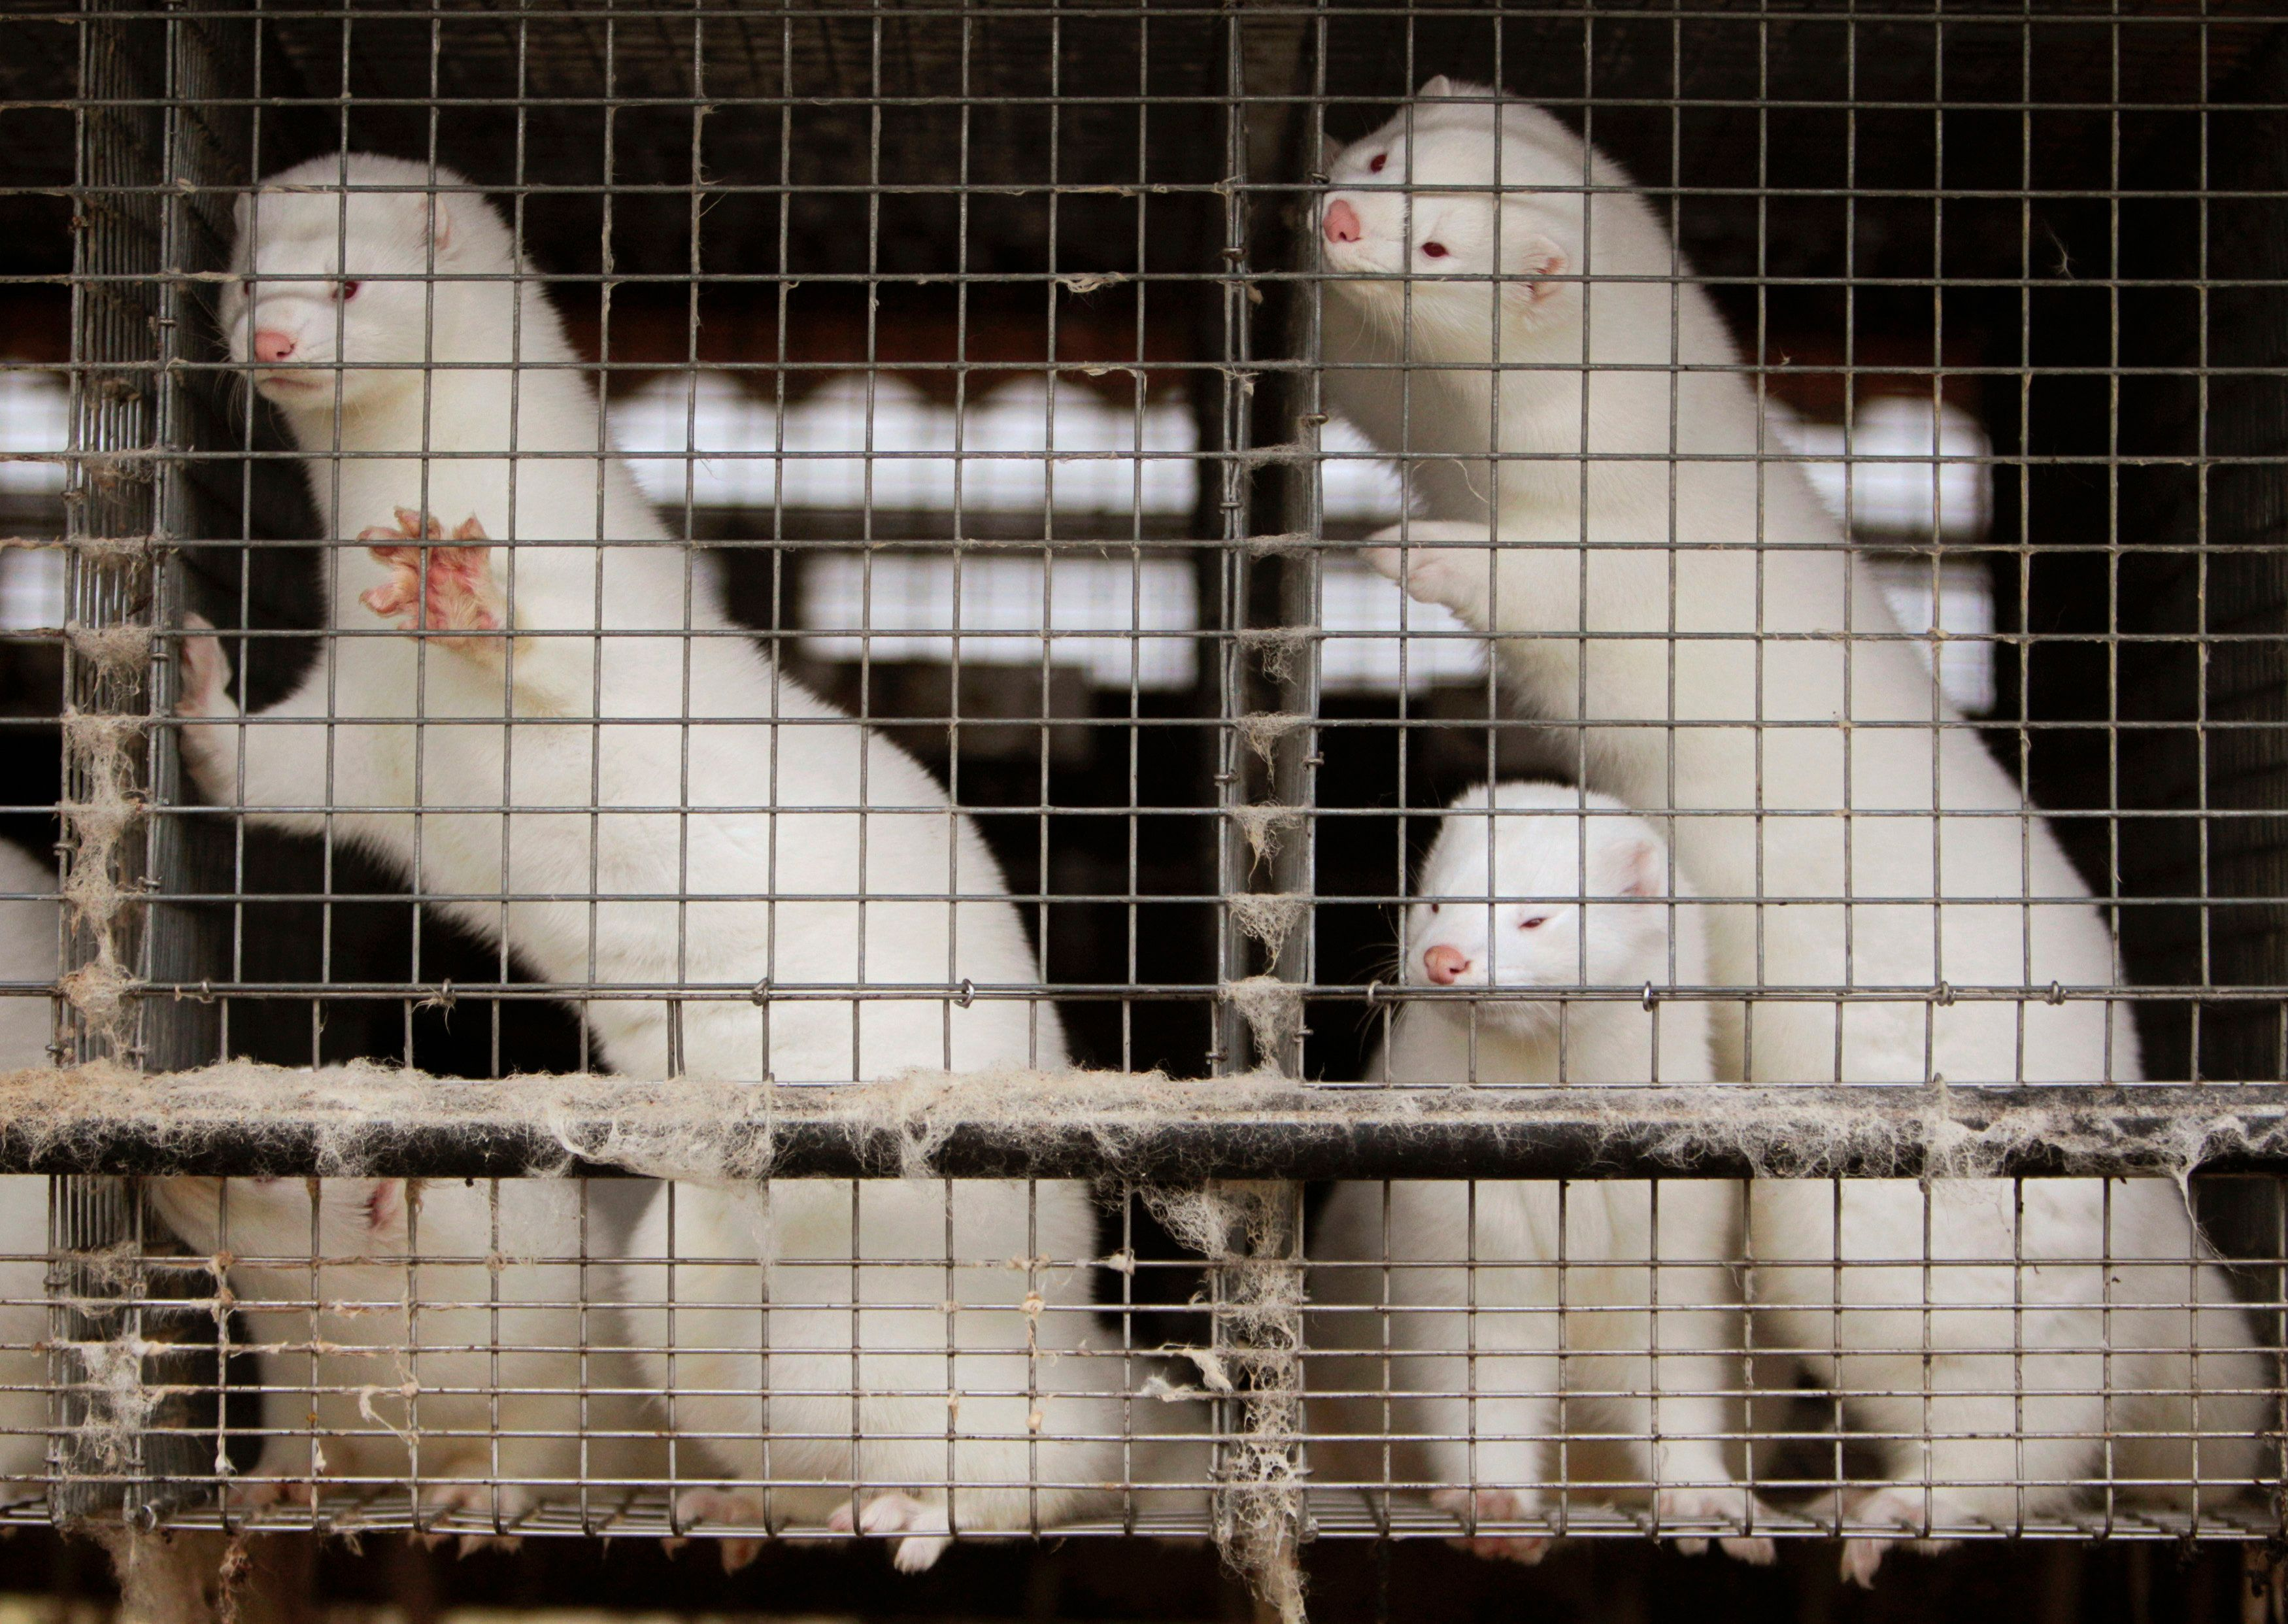 San Francisco City Supervisor Katy Tang, who sponsored the fur sale ban,expressed hope that the law will set an example for other cities. Minks are seen at a fur farm in Belarus.